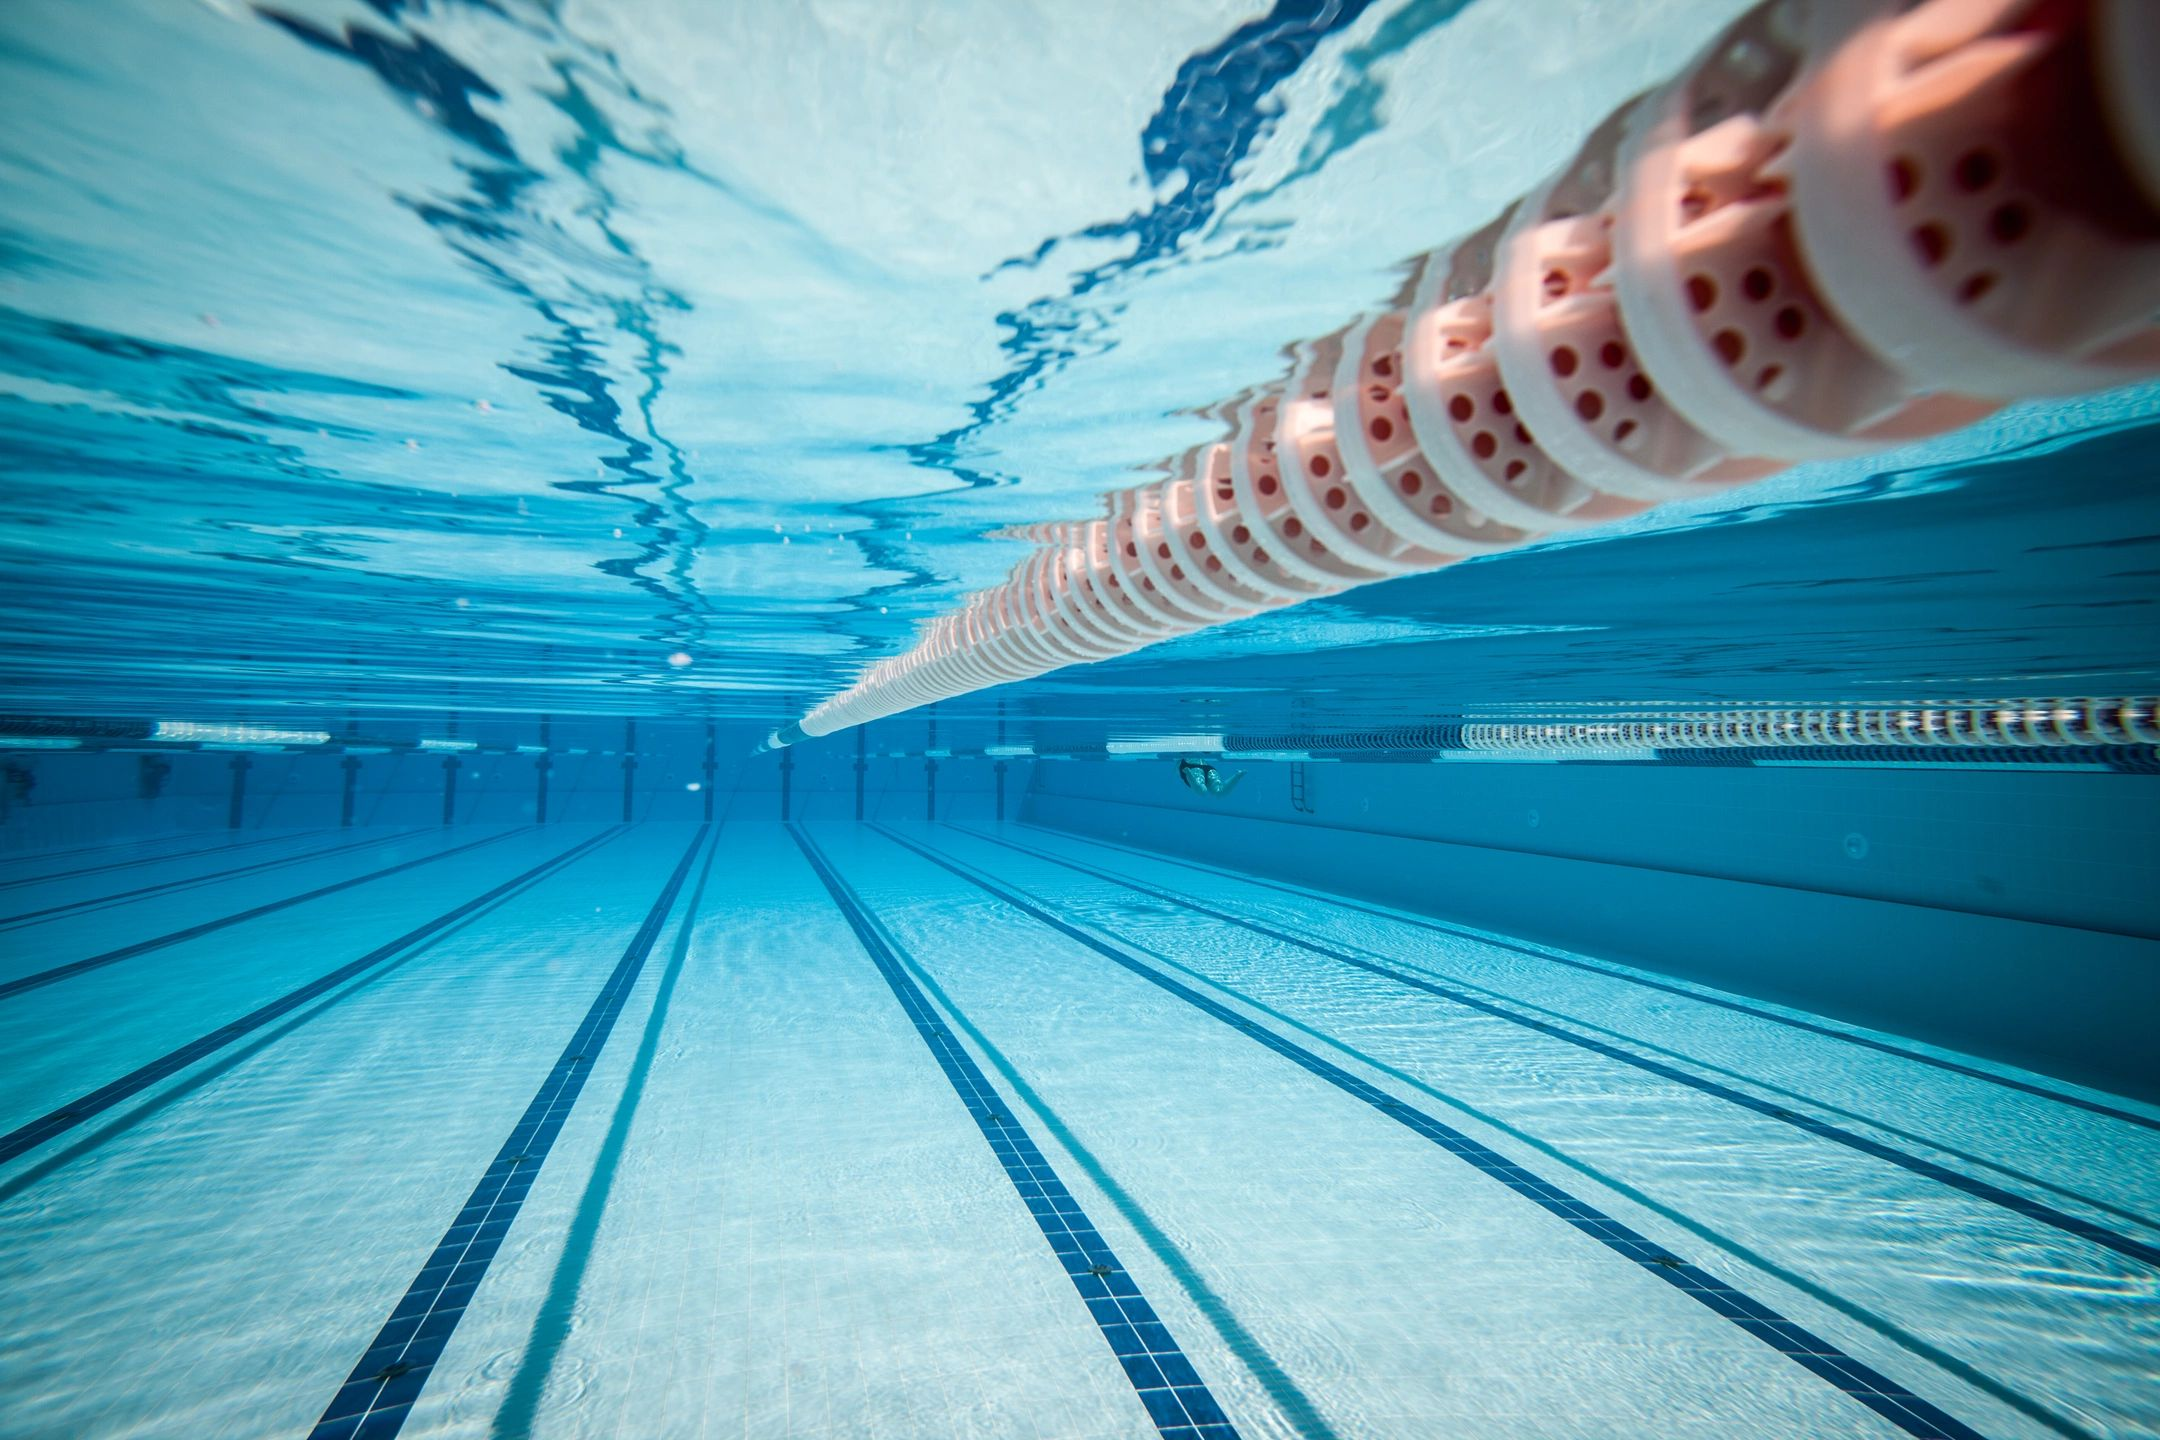 swim lanes underwater in pool